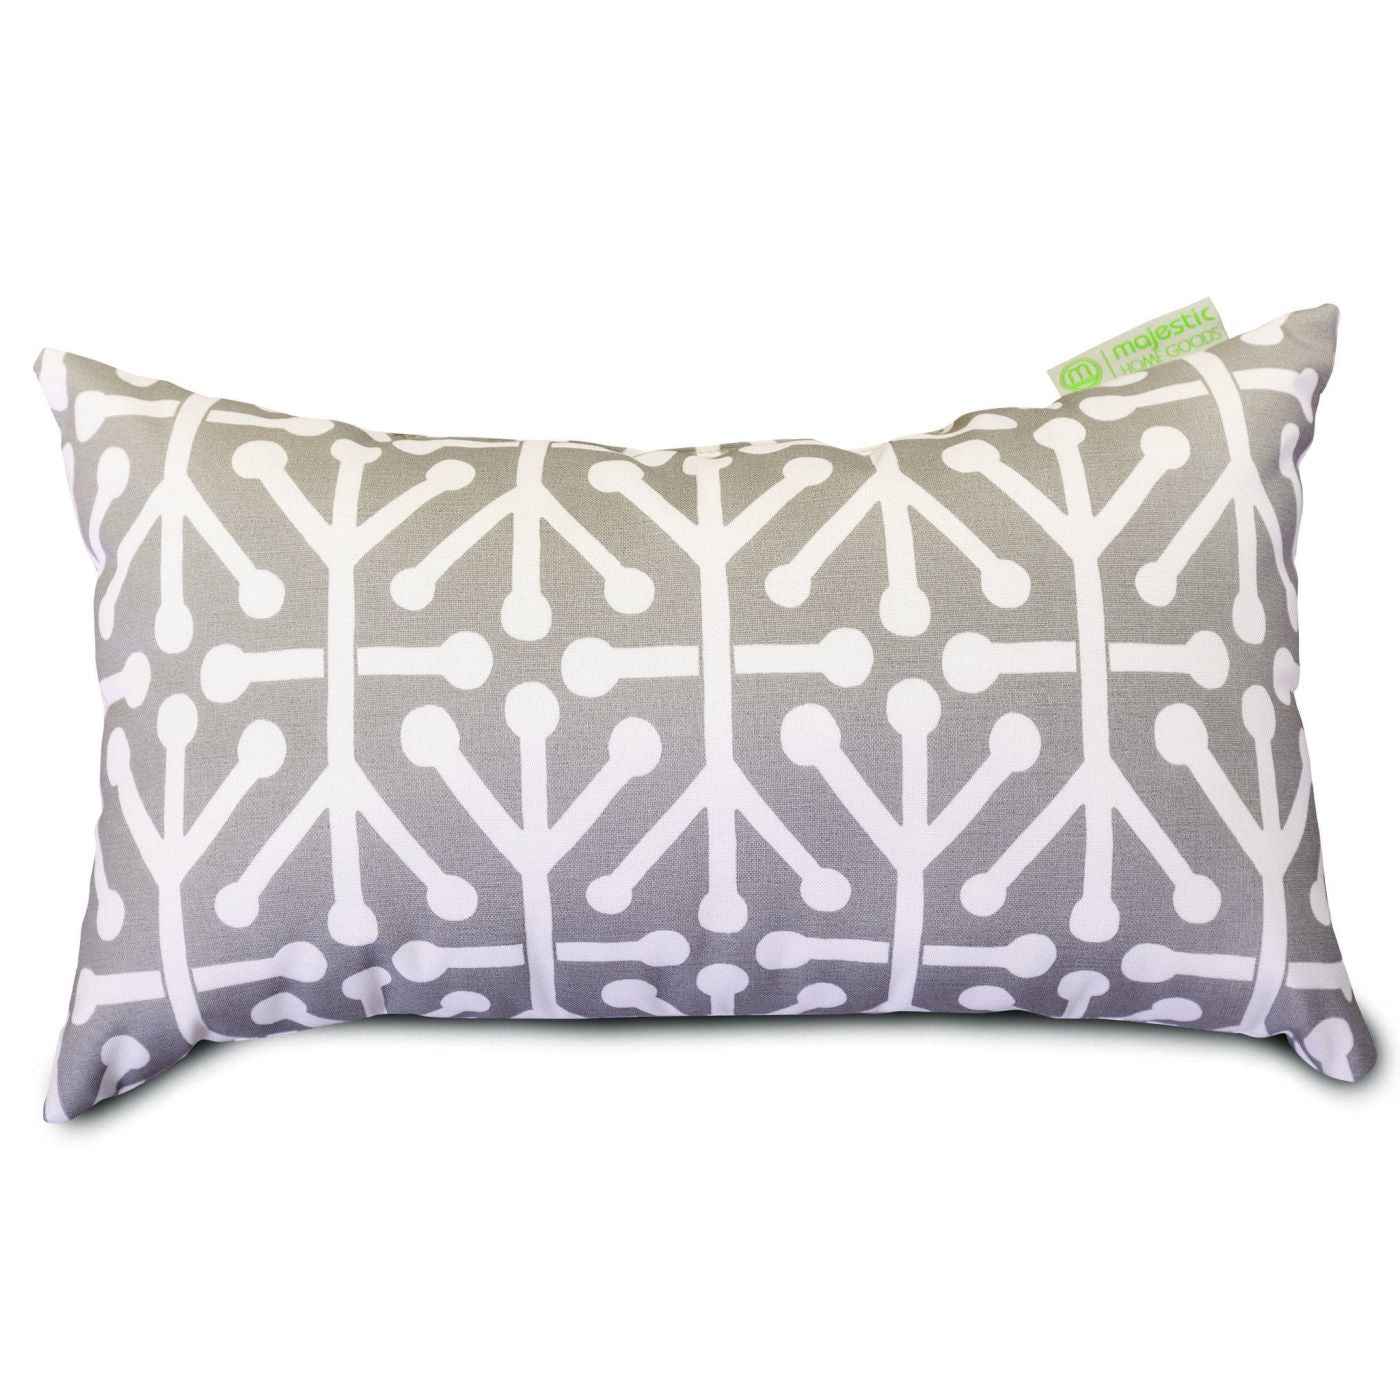 Small Gray Decorative Pillow : Majestic Home Gray Aruba Small Pillow 85907220686. Only $33.60 at Contemporary Furniture Warehouse.